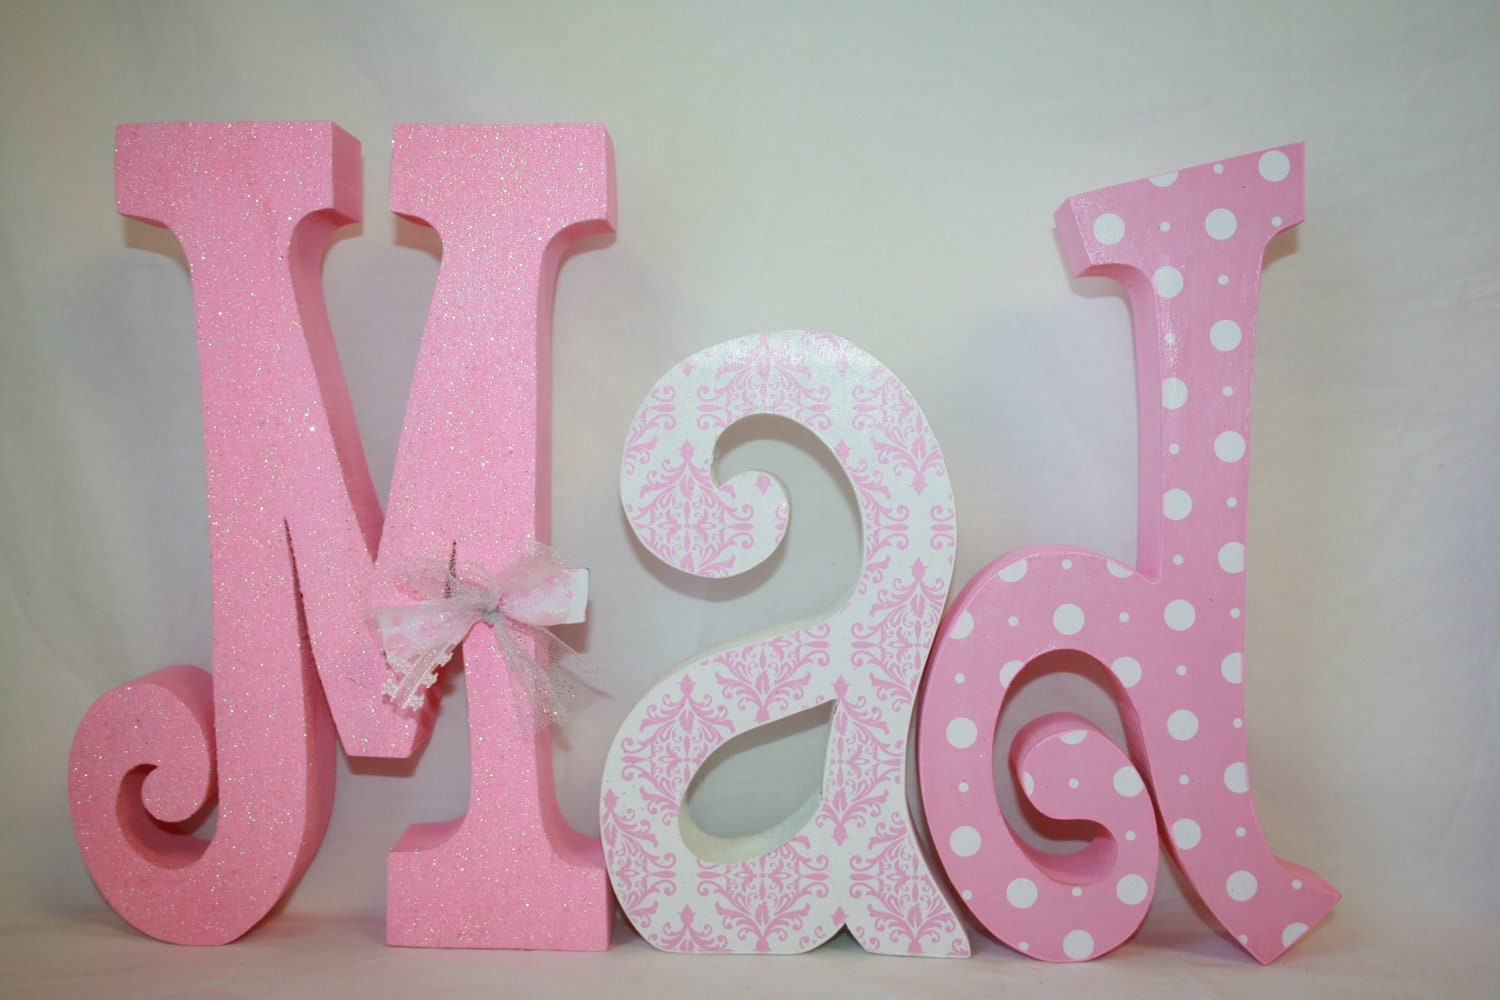 Girl Decor Pink And White White Polka Dots 7 Letter Set